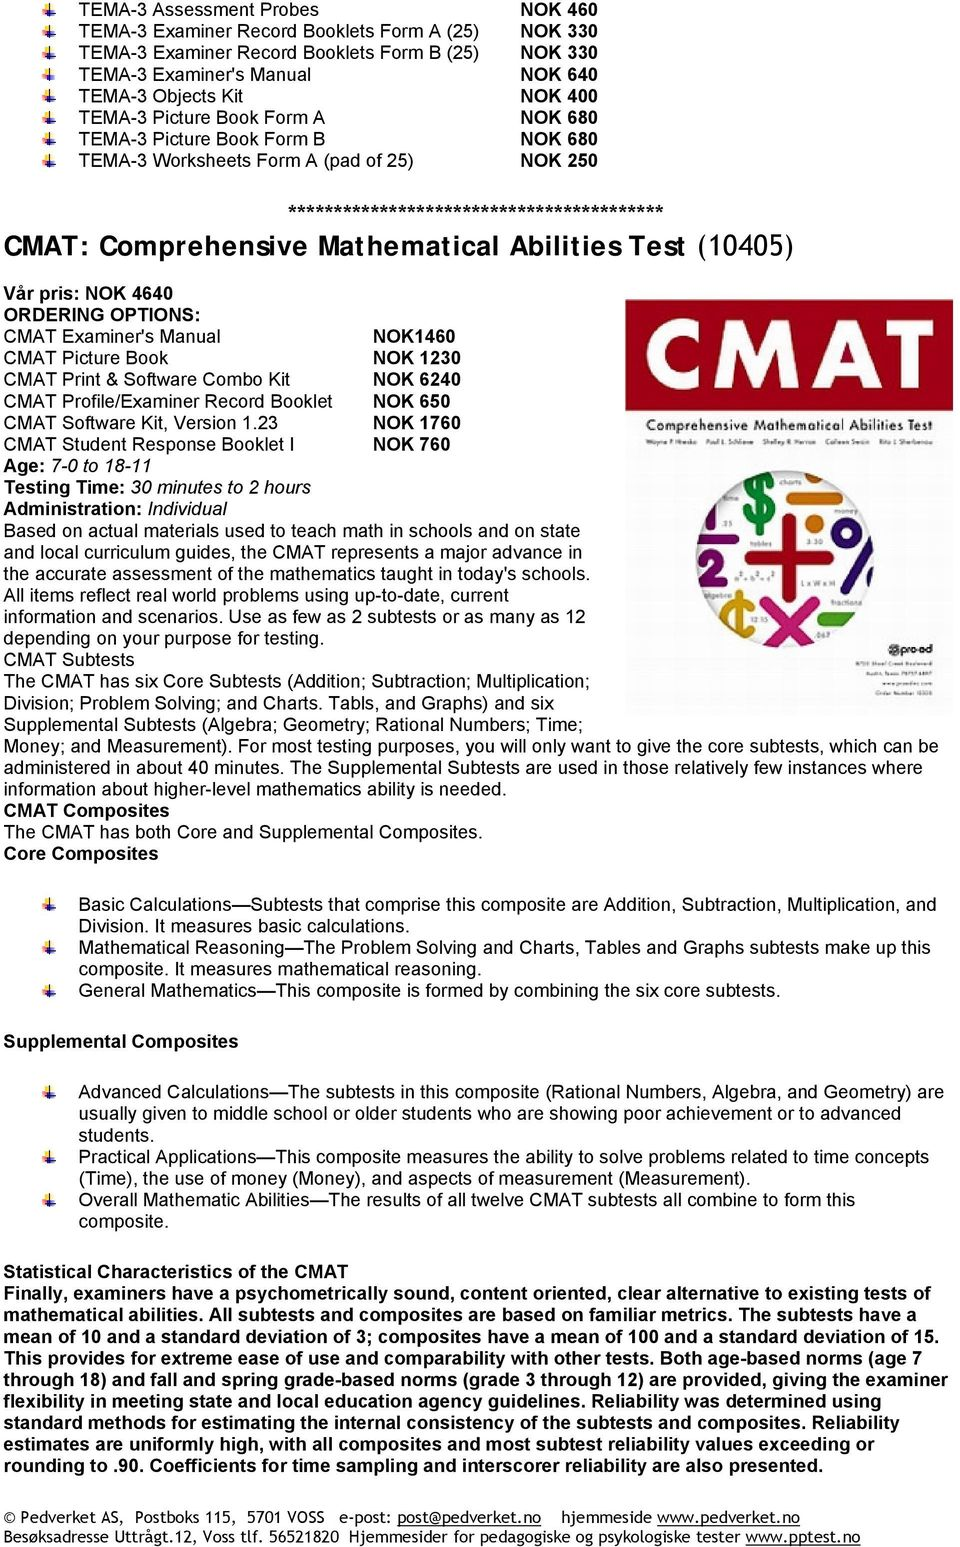 Test (10405) Vår pris: NOK 4640 ORDERING OPTIONS: CMAT Examiner's Manual NOK1460 CMAT Picture Book NOK 1230 CMAT Print & Software Combo Kit NOK 6240 CMAT Profile/Examiner Record Booklet NOK 650 CMAT